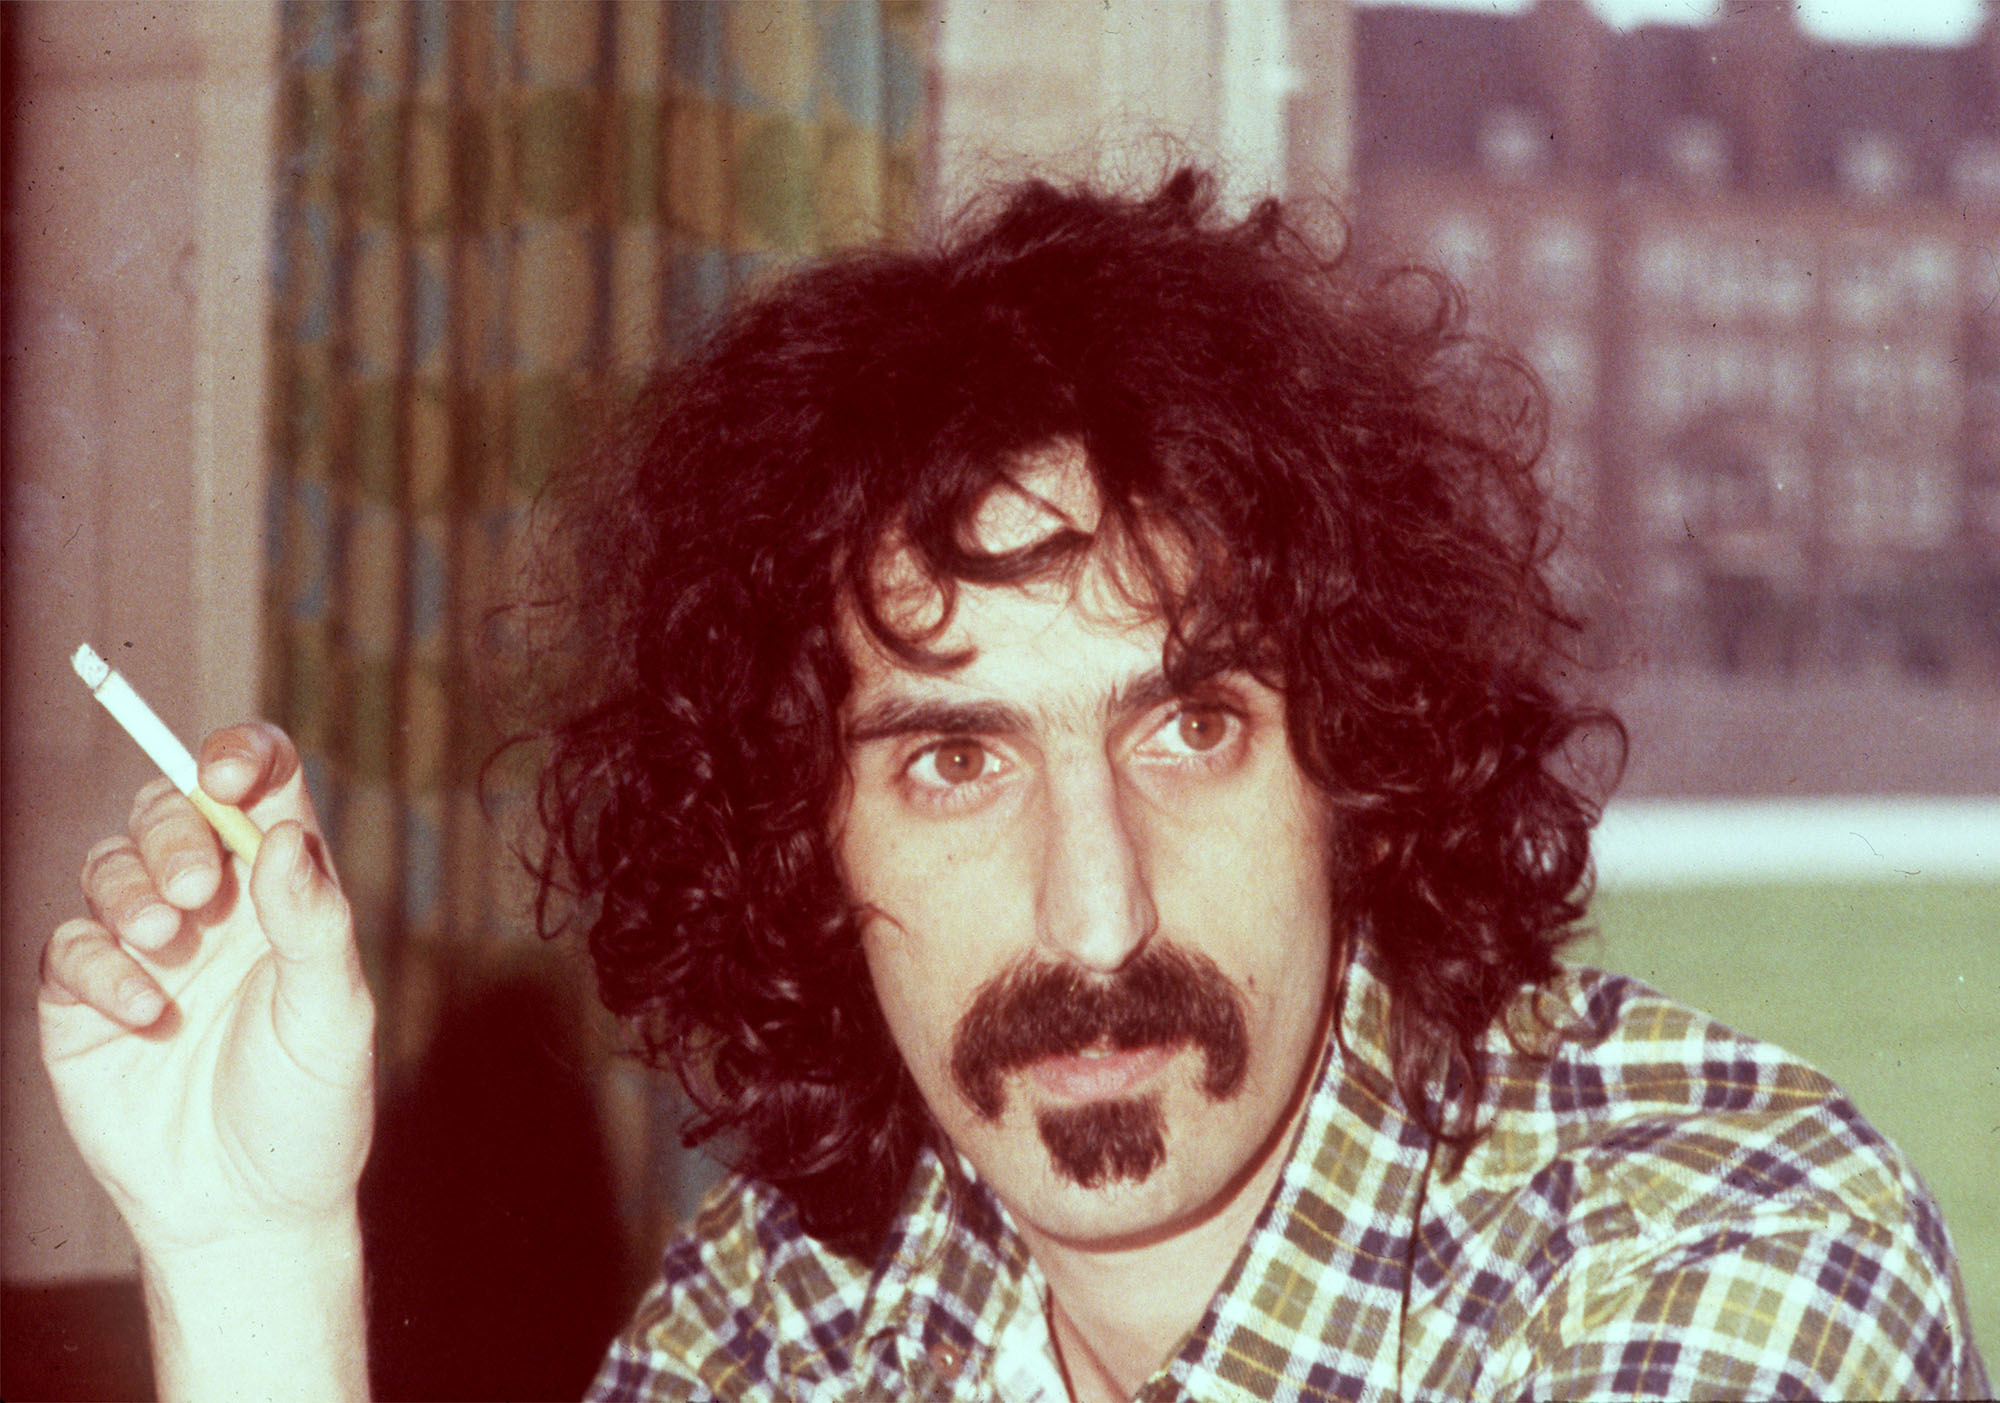 A Frank Zappa Hologram Is Going On Tour Stereogum